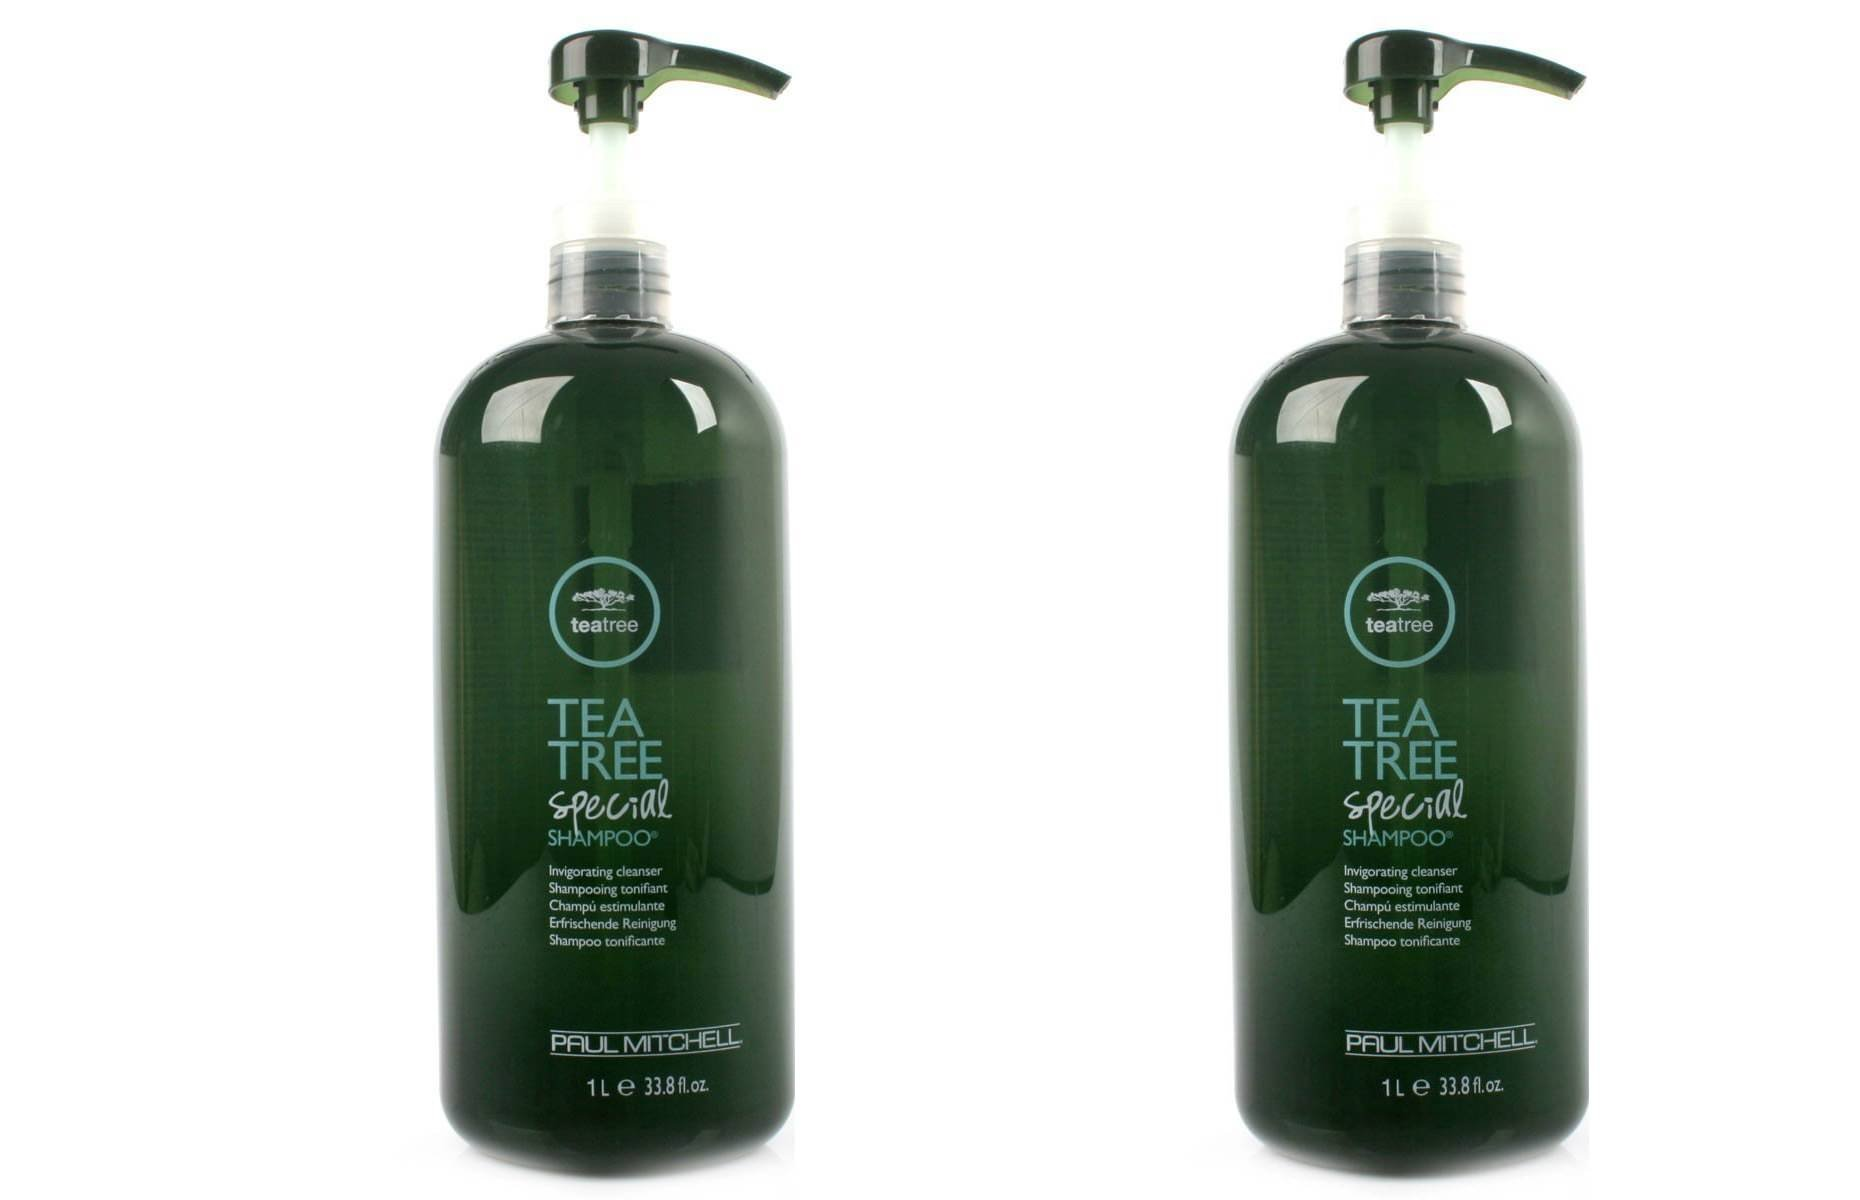 Paul Mitchell SpUOUu Tea Tree Special Shampoo, 33.8 oz., 2 Units